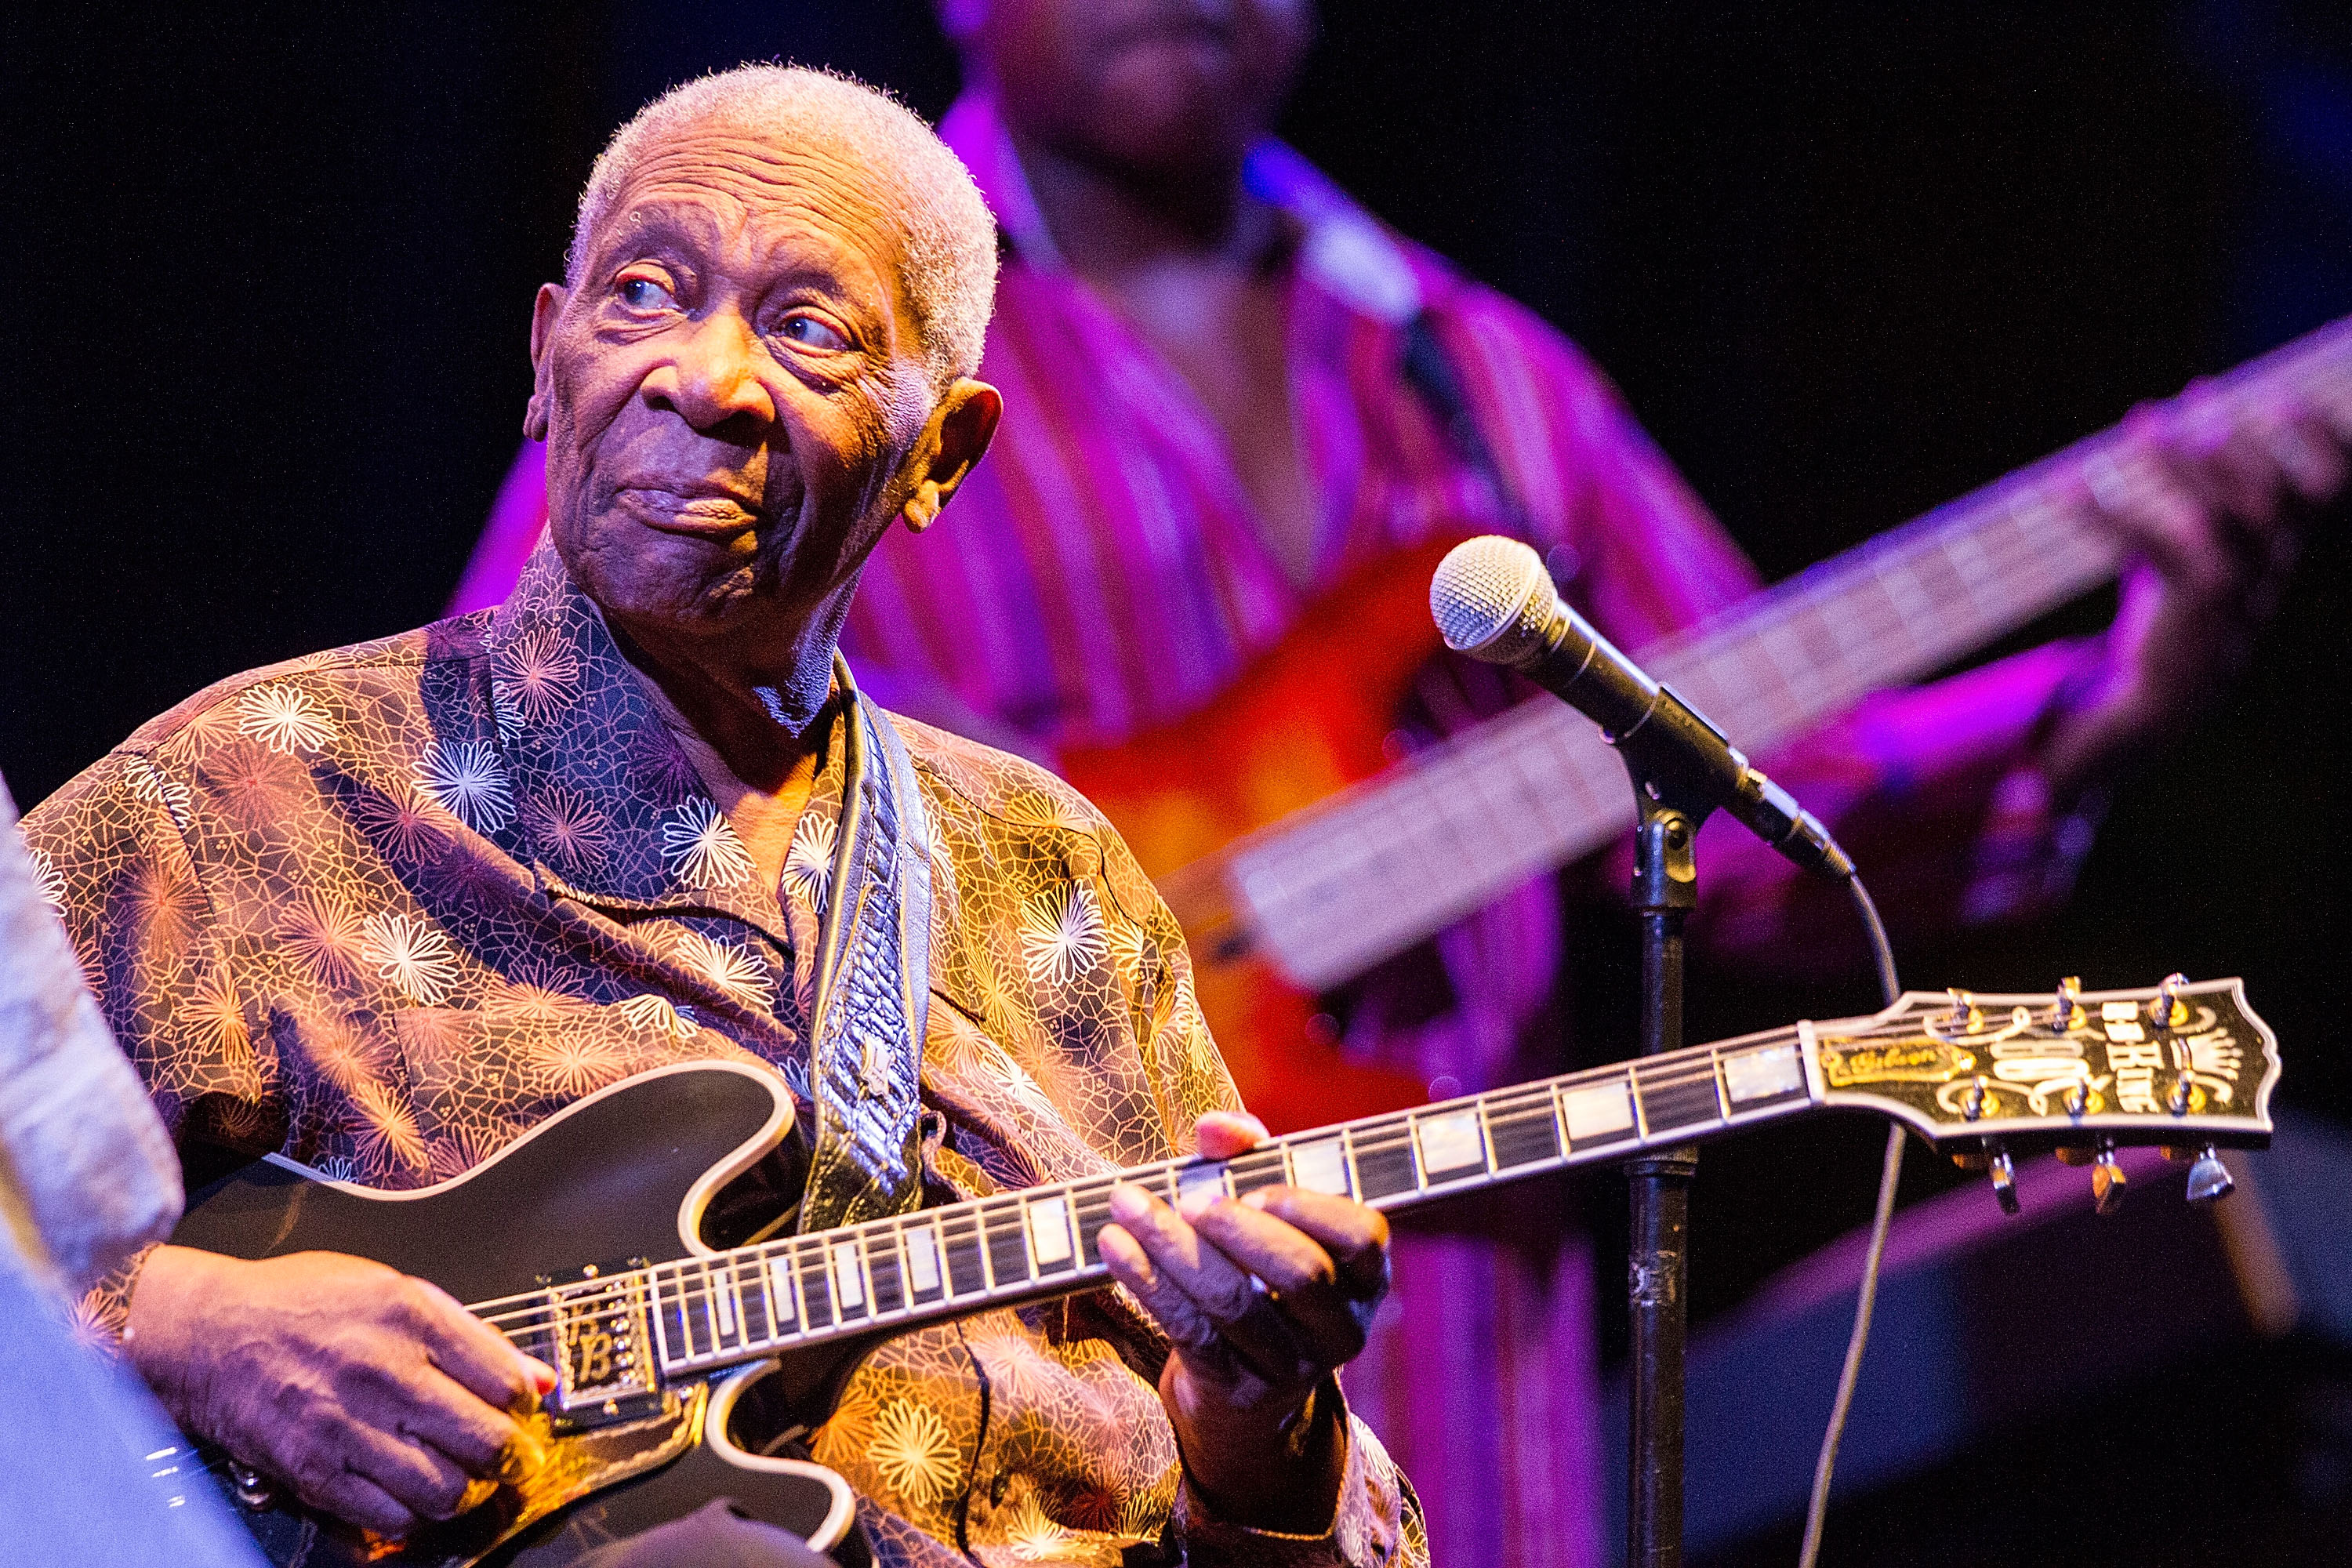 Blues legend B.B. King performs on stage at Humphrey's Concerts By The Bay on Aug. 27, 2014 in San Diego.